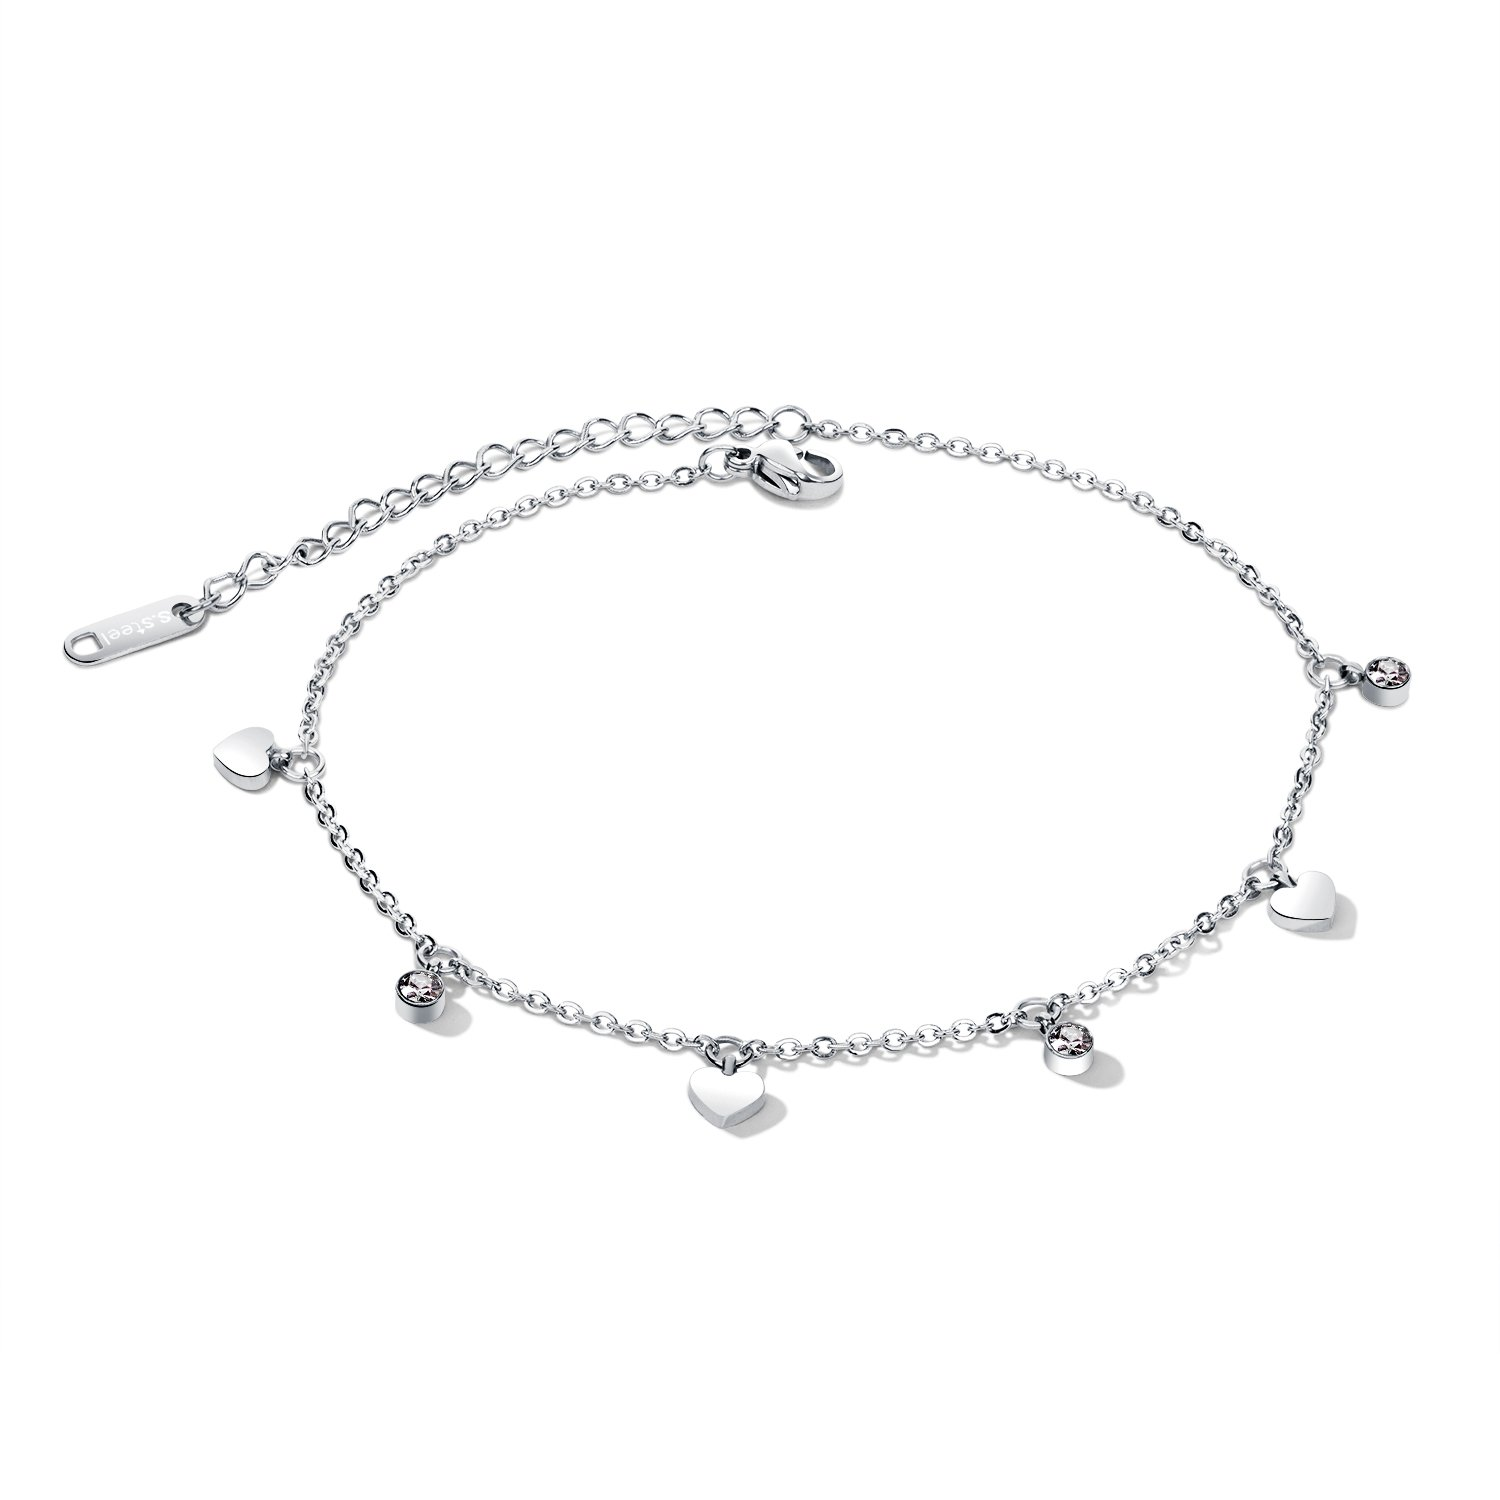 Fate Love Jewelry Rose Gold/Silver CZ Stone Love Heart Dangle Sexy Foot Anklets Bracelets for Women, Adjust Charm Chain 210mm+60mm